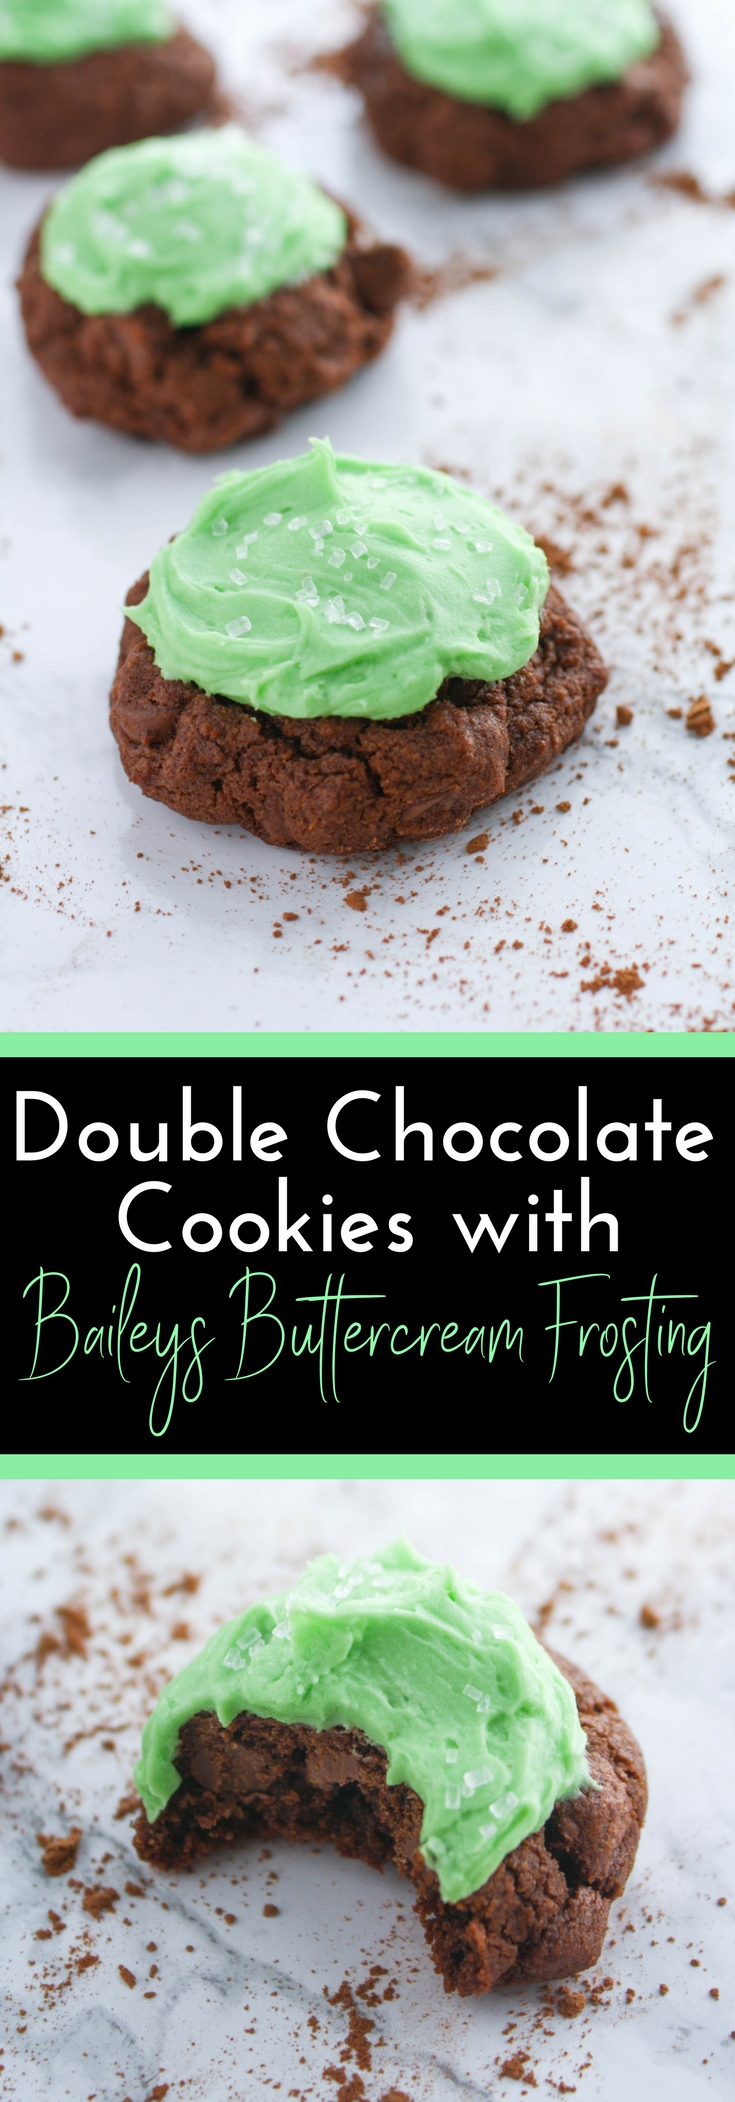 Double Chocolate Cookies with Baileys Buttercream Frosting are the perfect treats to help celebrate St. Patrick's Day! Enjoy these Double Chocolate Cookies with Baileys Buttercream Frosting any day of the year, but they're fun for St. Patrick's Day!